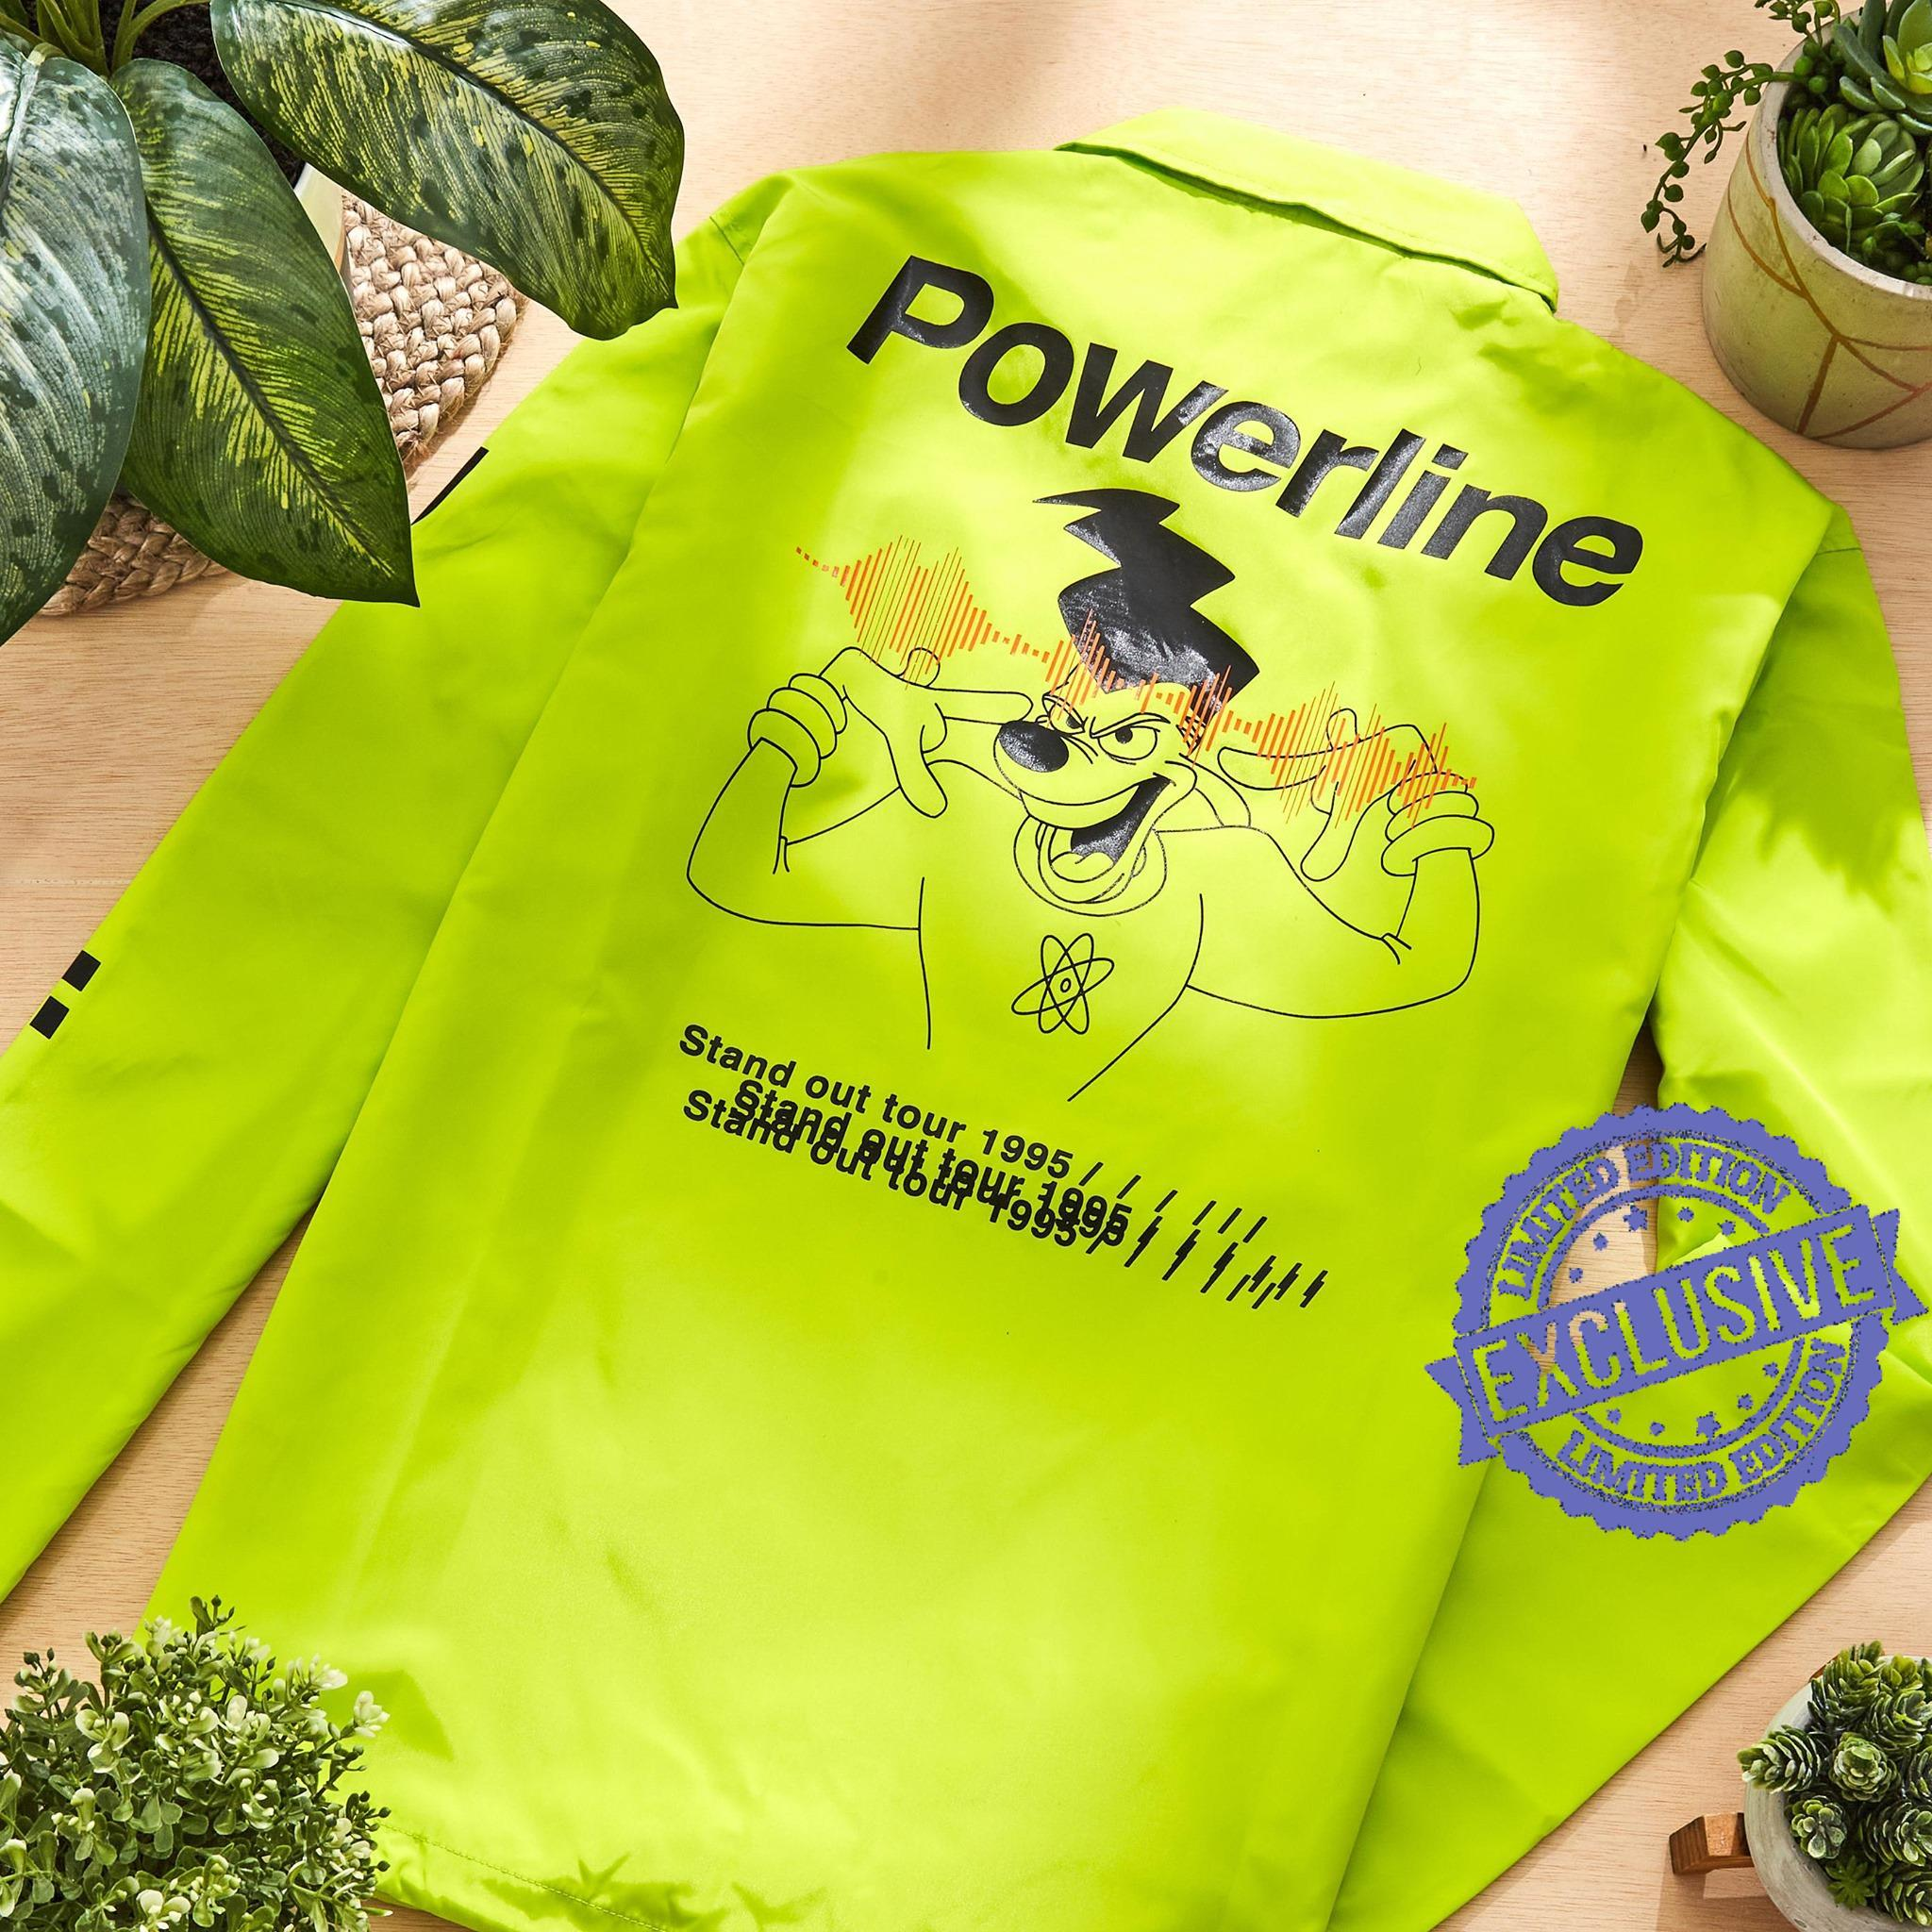 Powerline stand out tour 1995 shirt